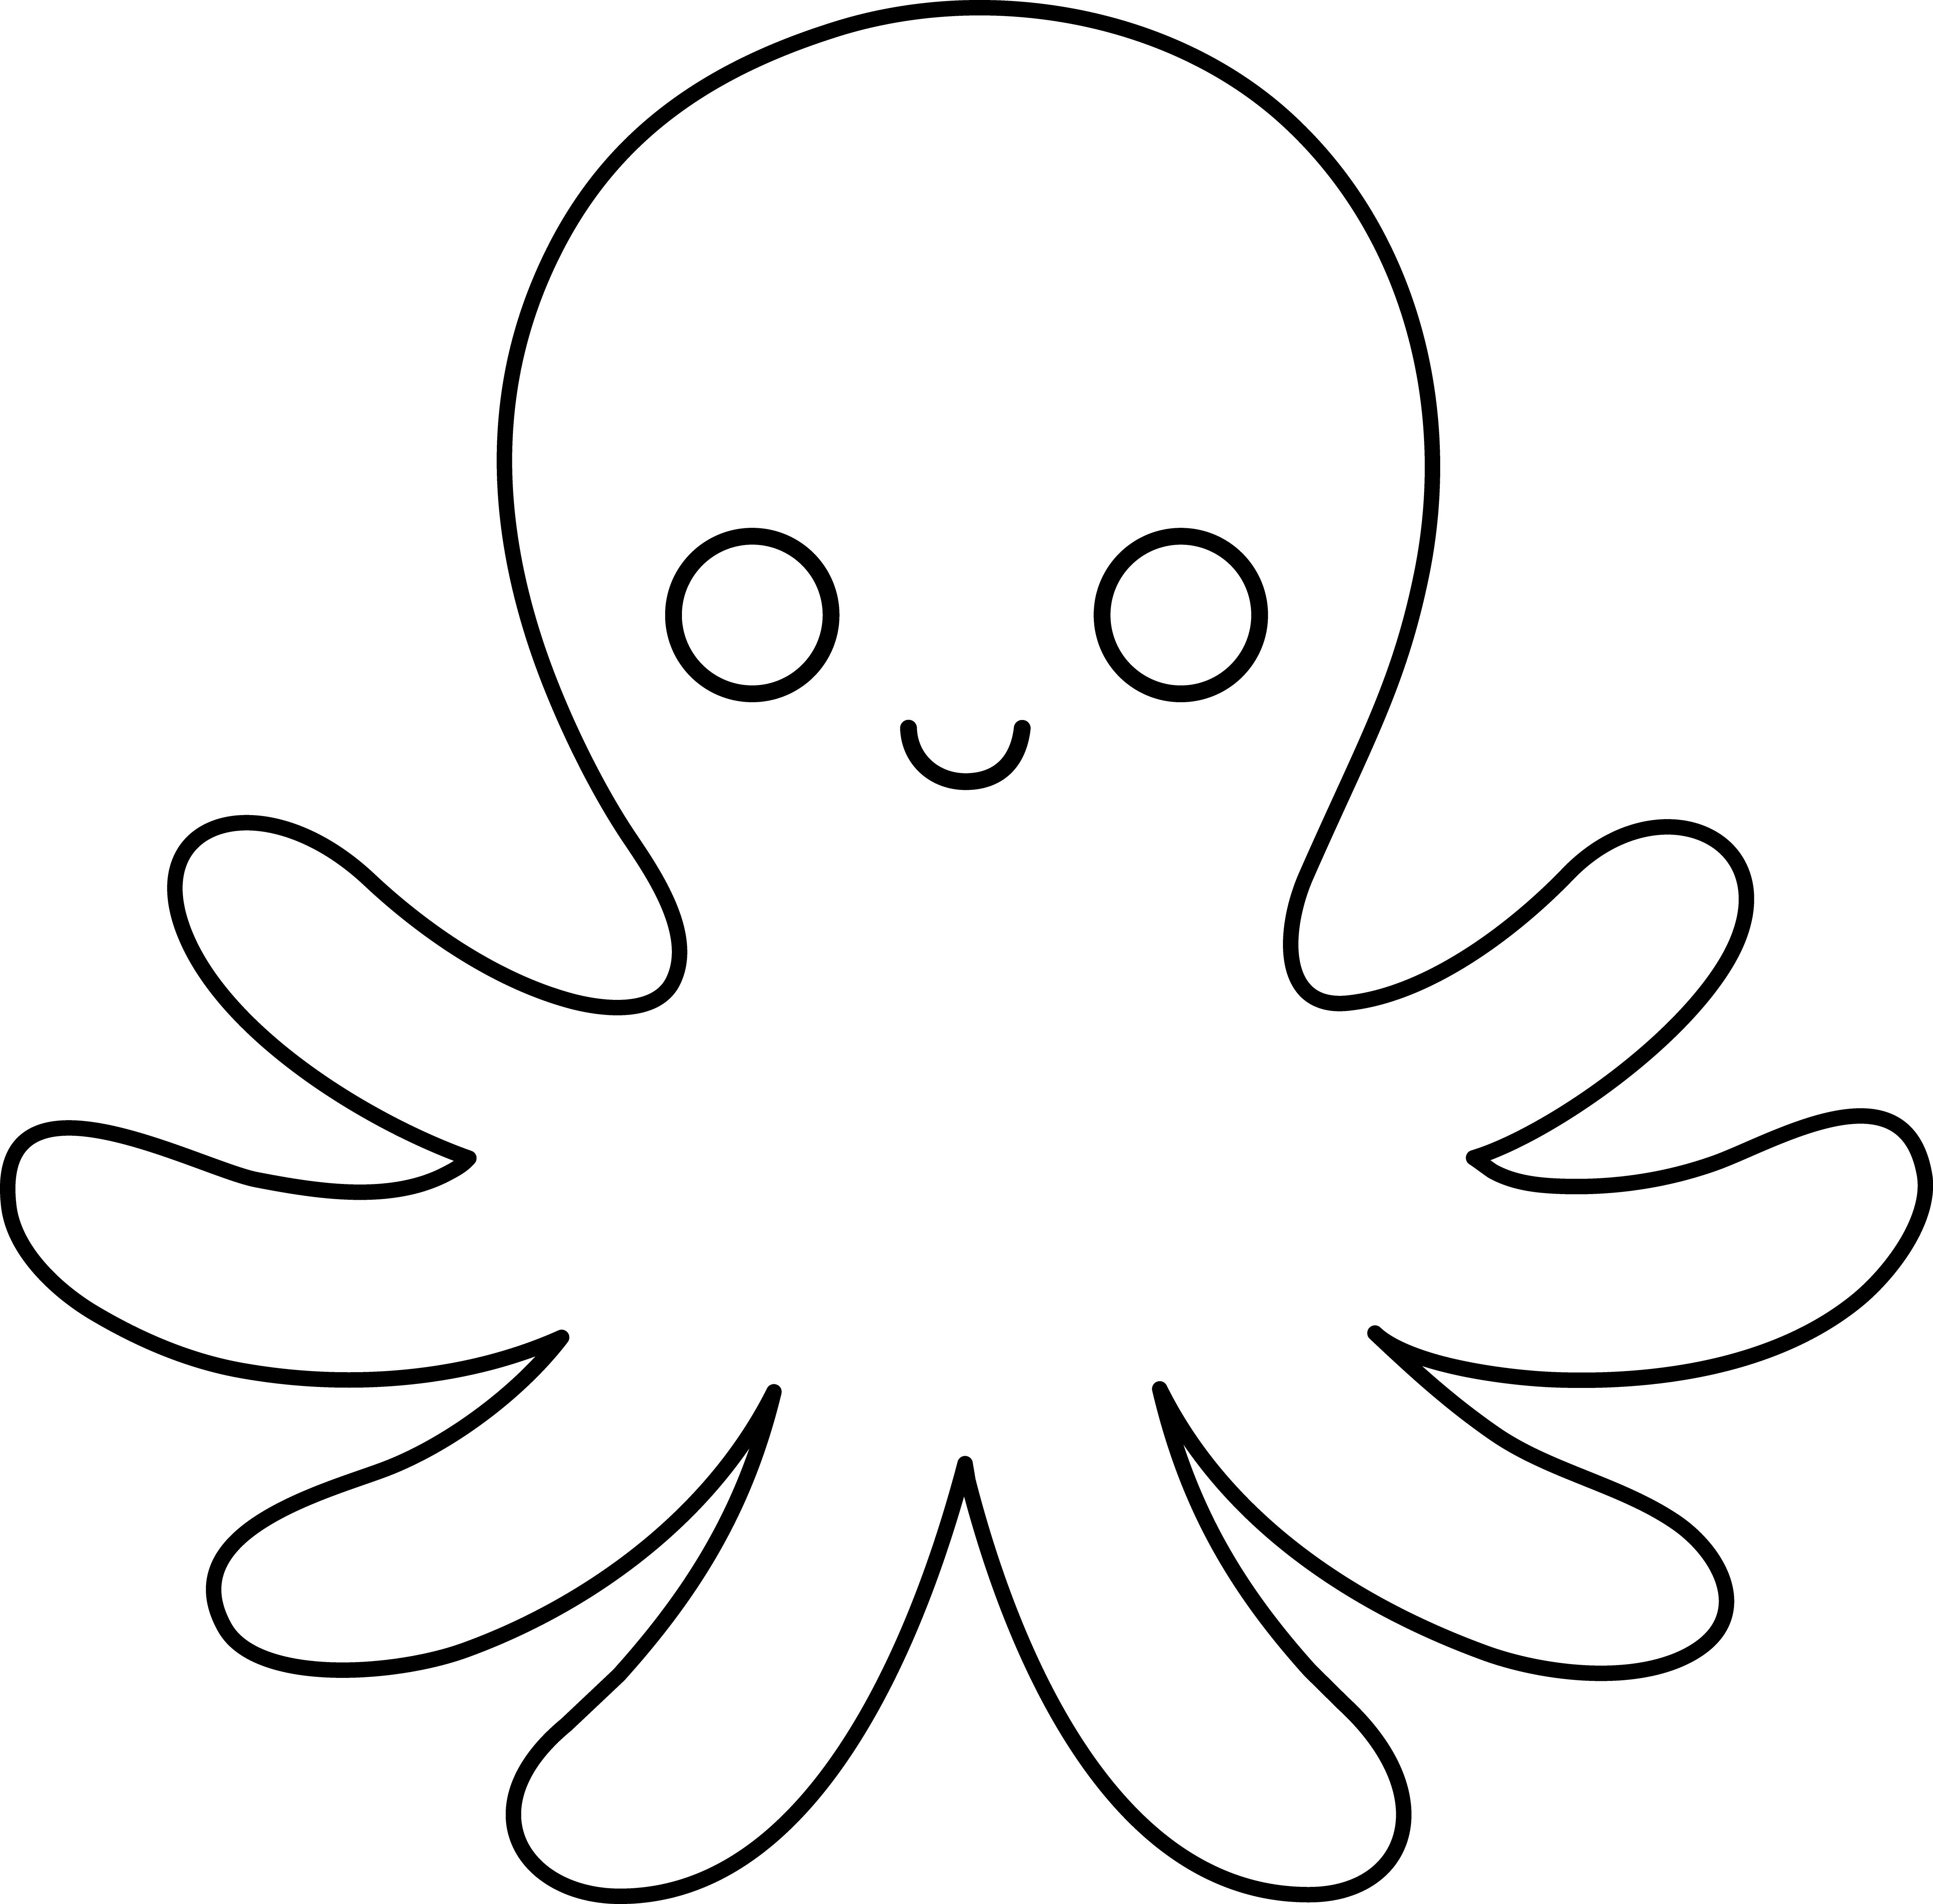 svg freeuse download Clip art black and. Drawing octopus cute